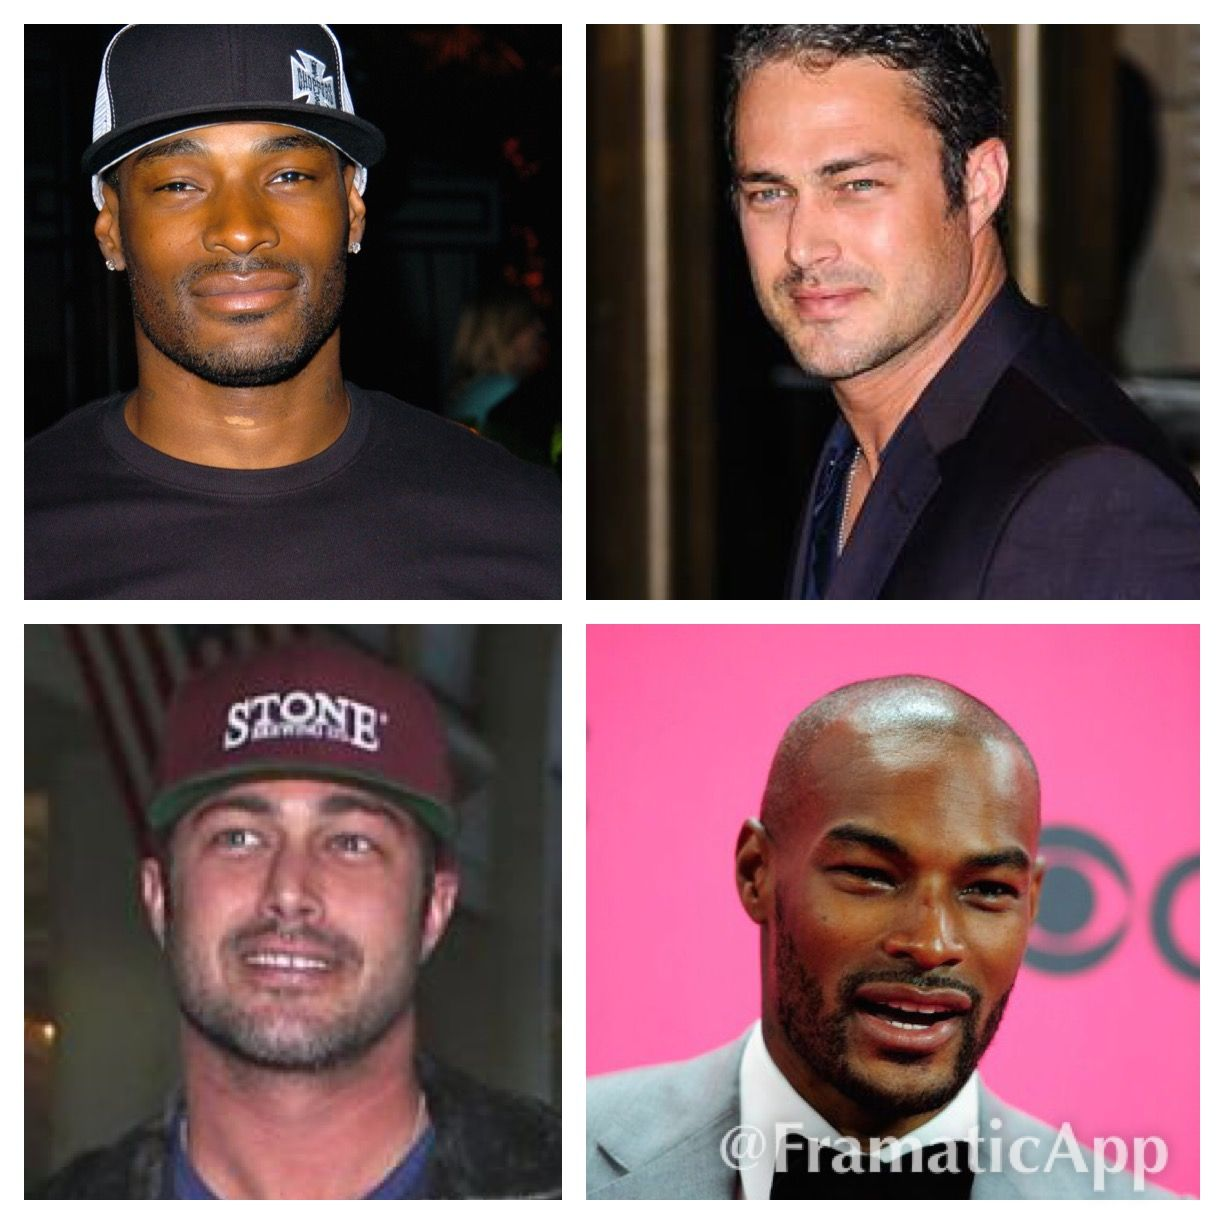 Tyson Beckford and Taylor Kinney - is it just me or do